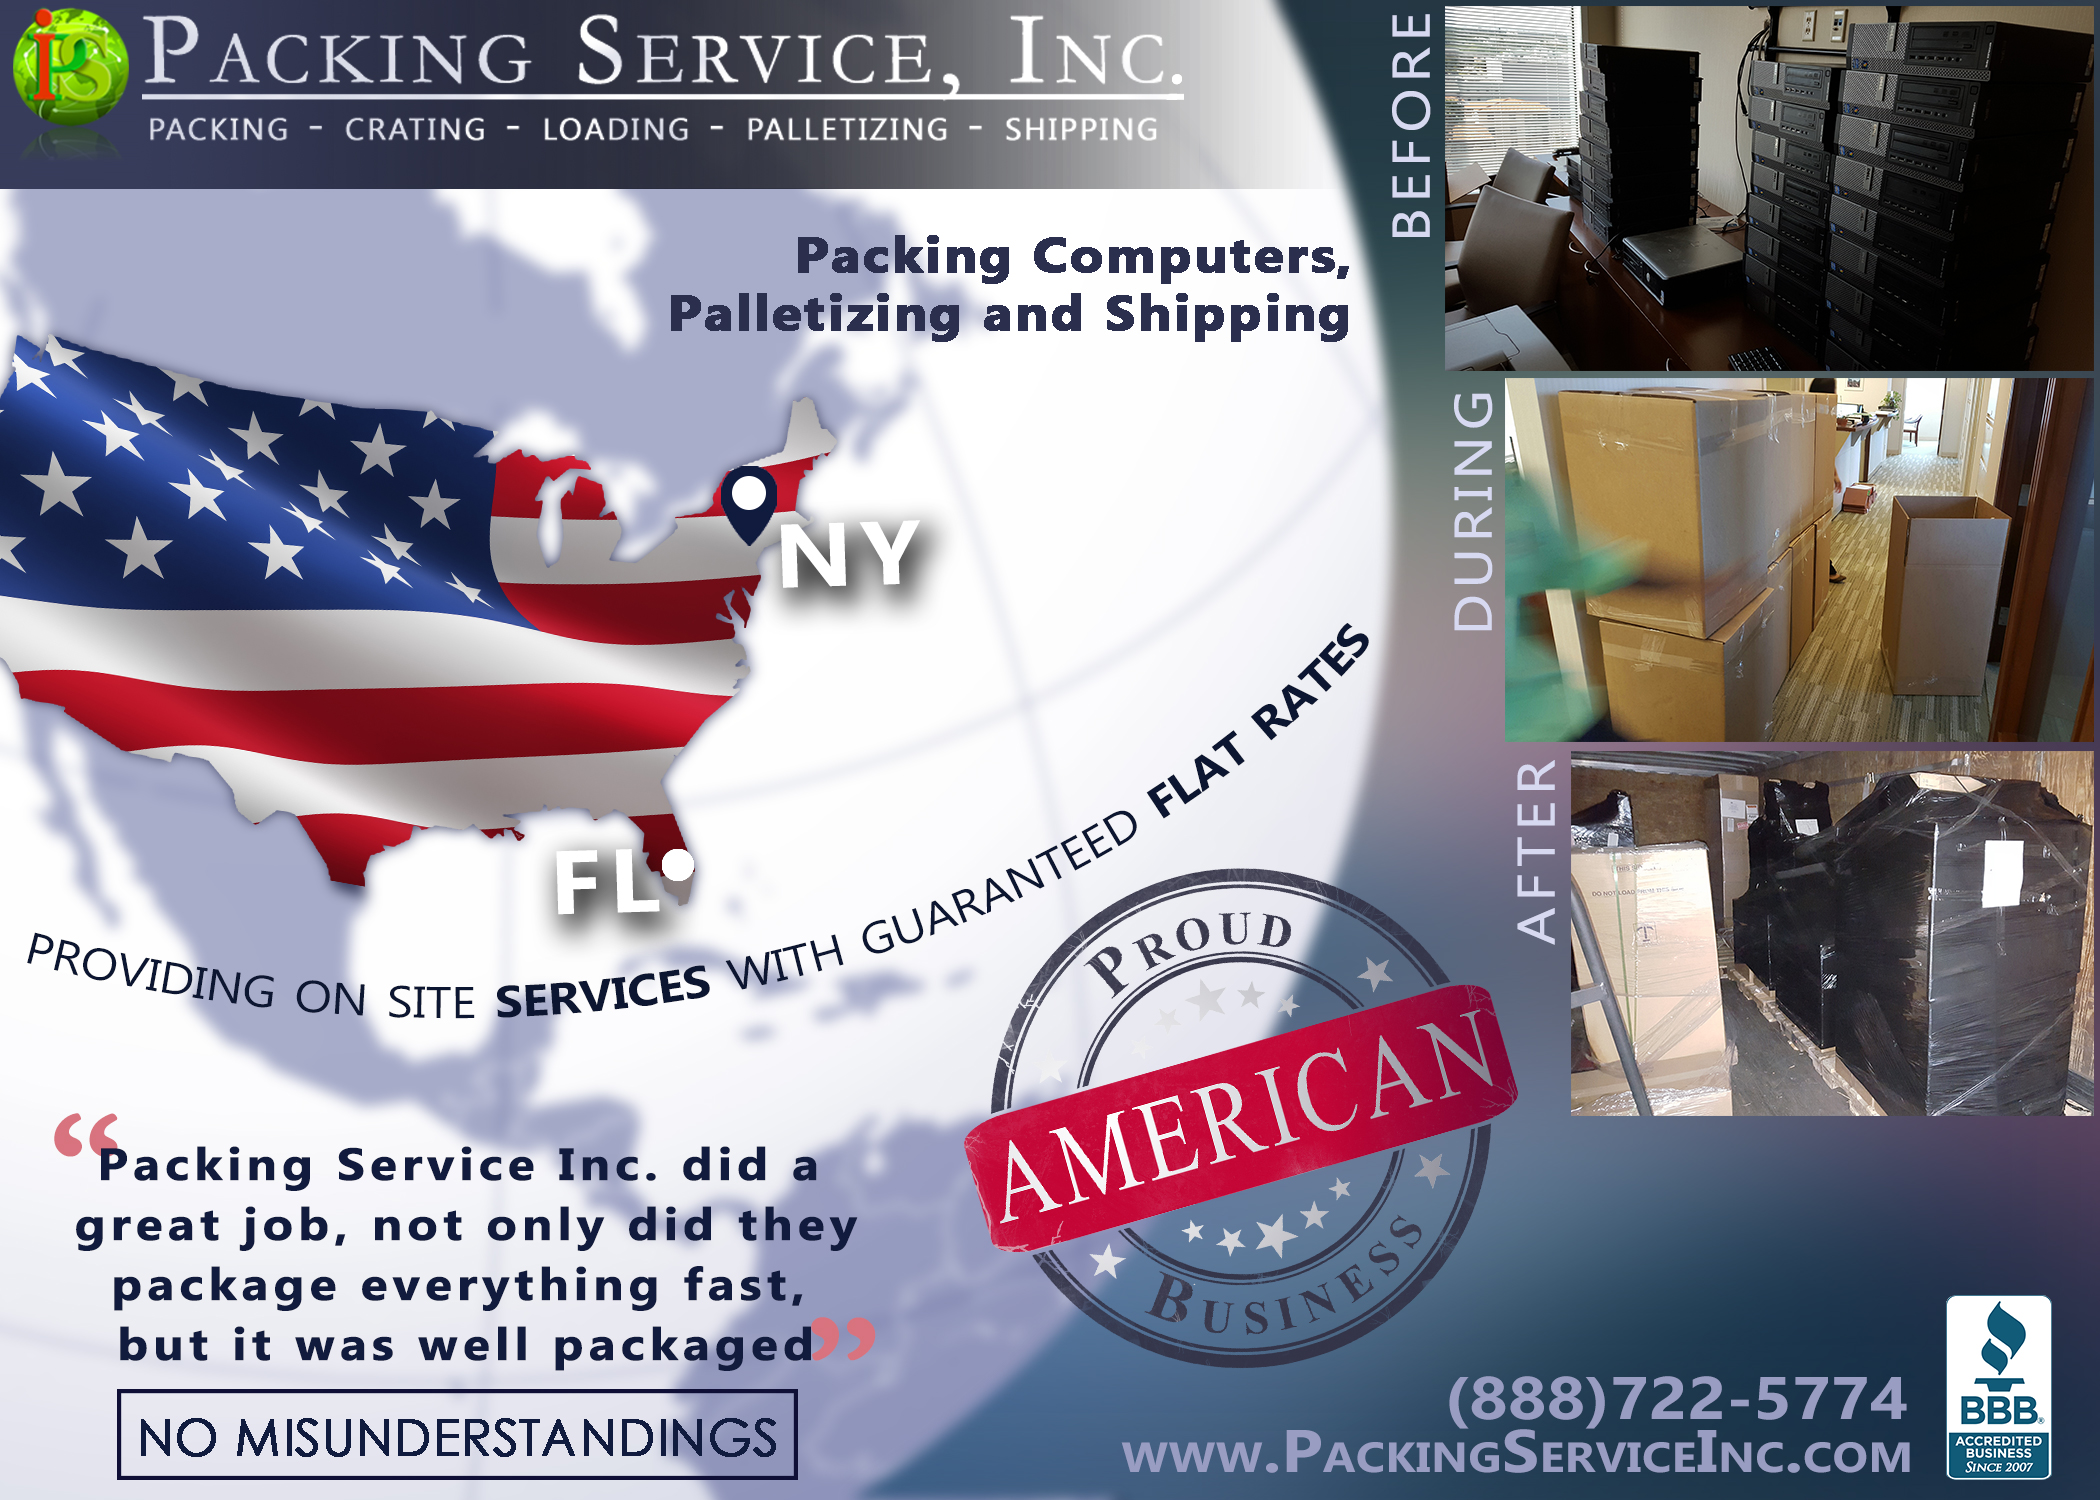 Packing boxes with computers, palletizing and shipping from Florida to New York with Packing Service, Inc. - 182